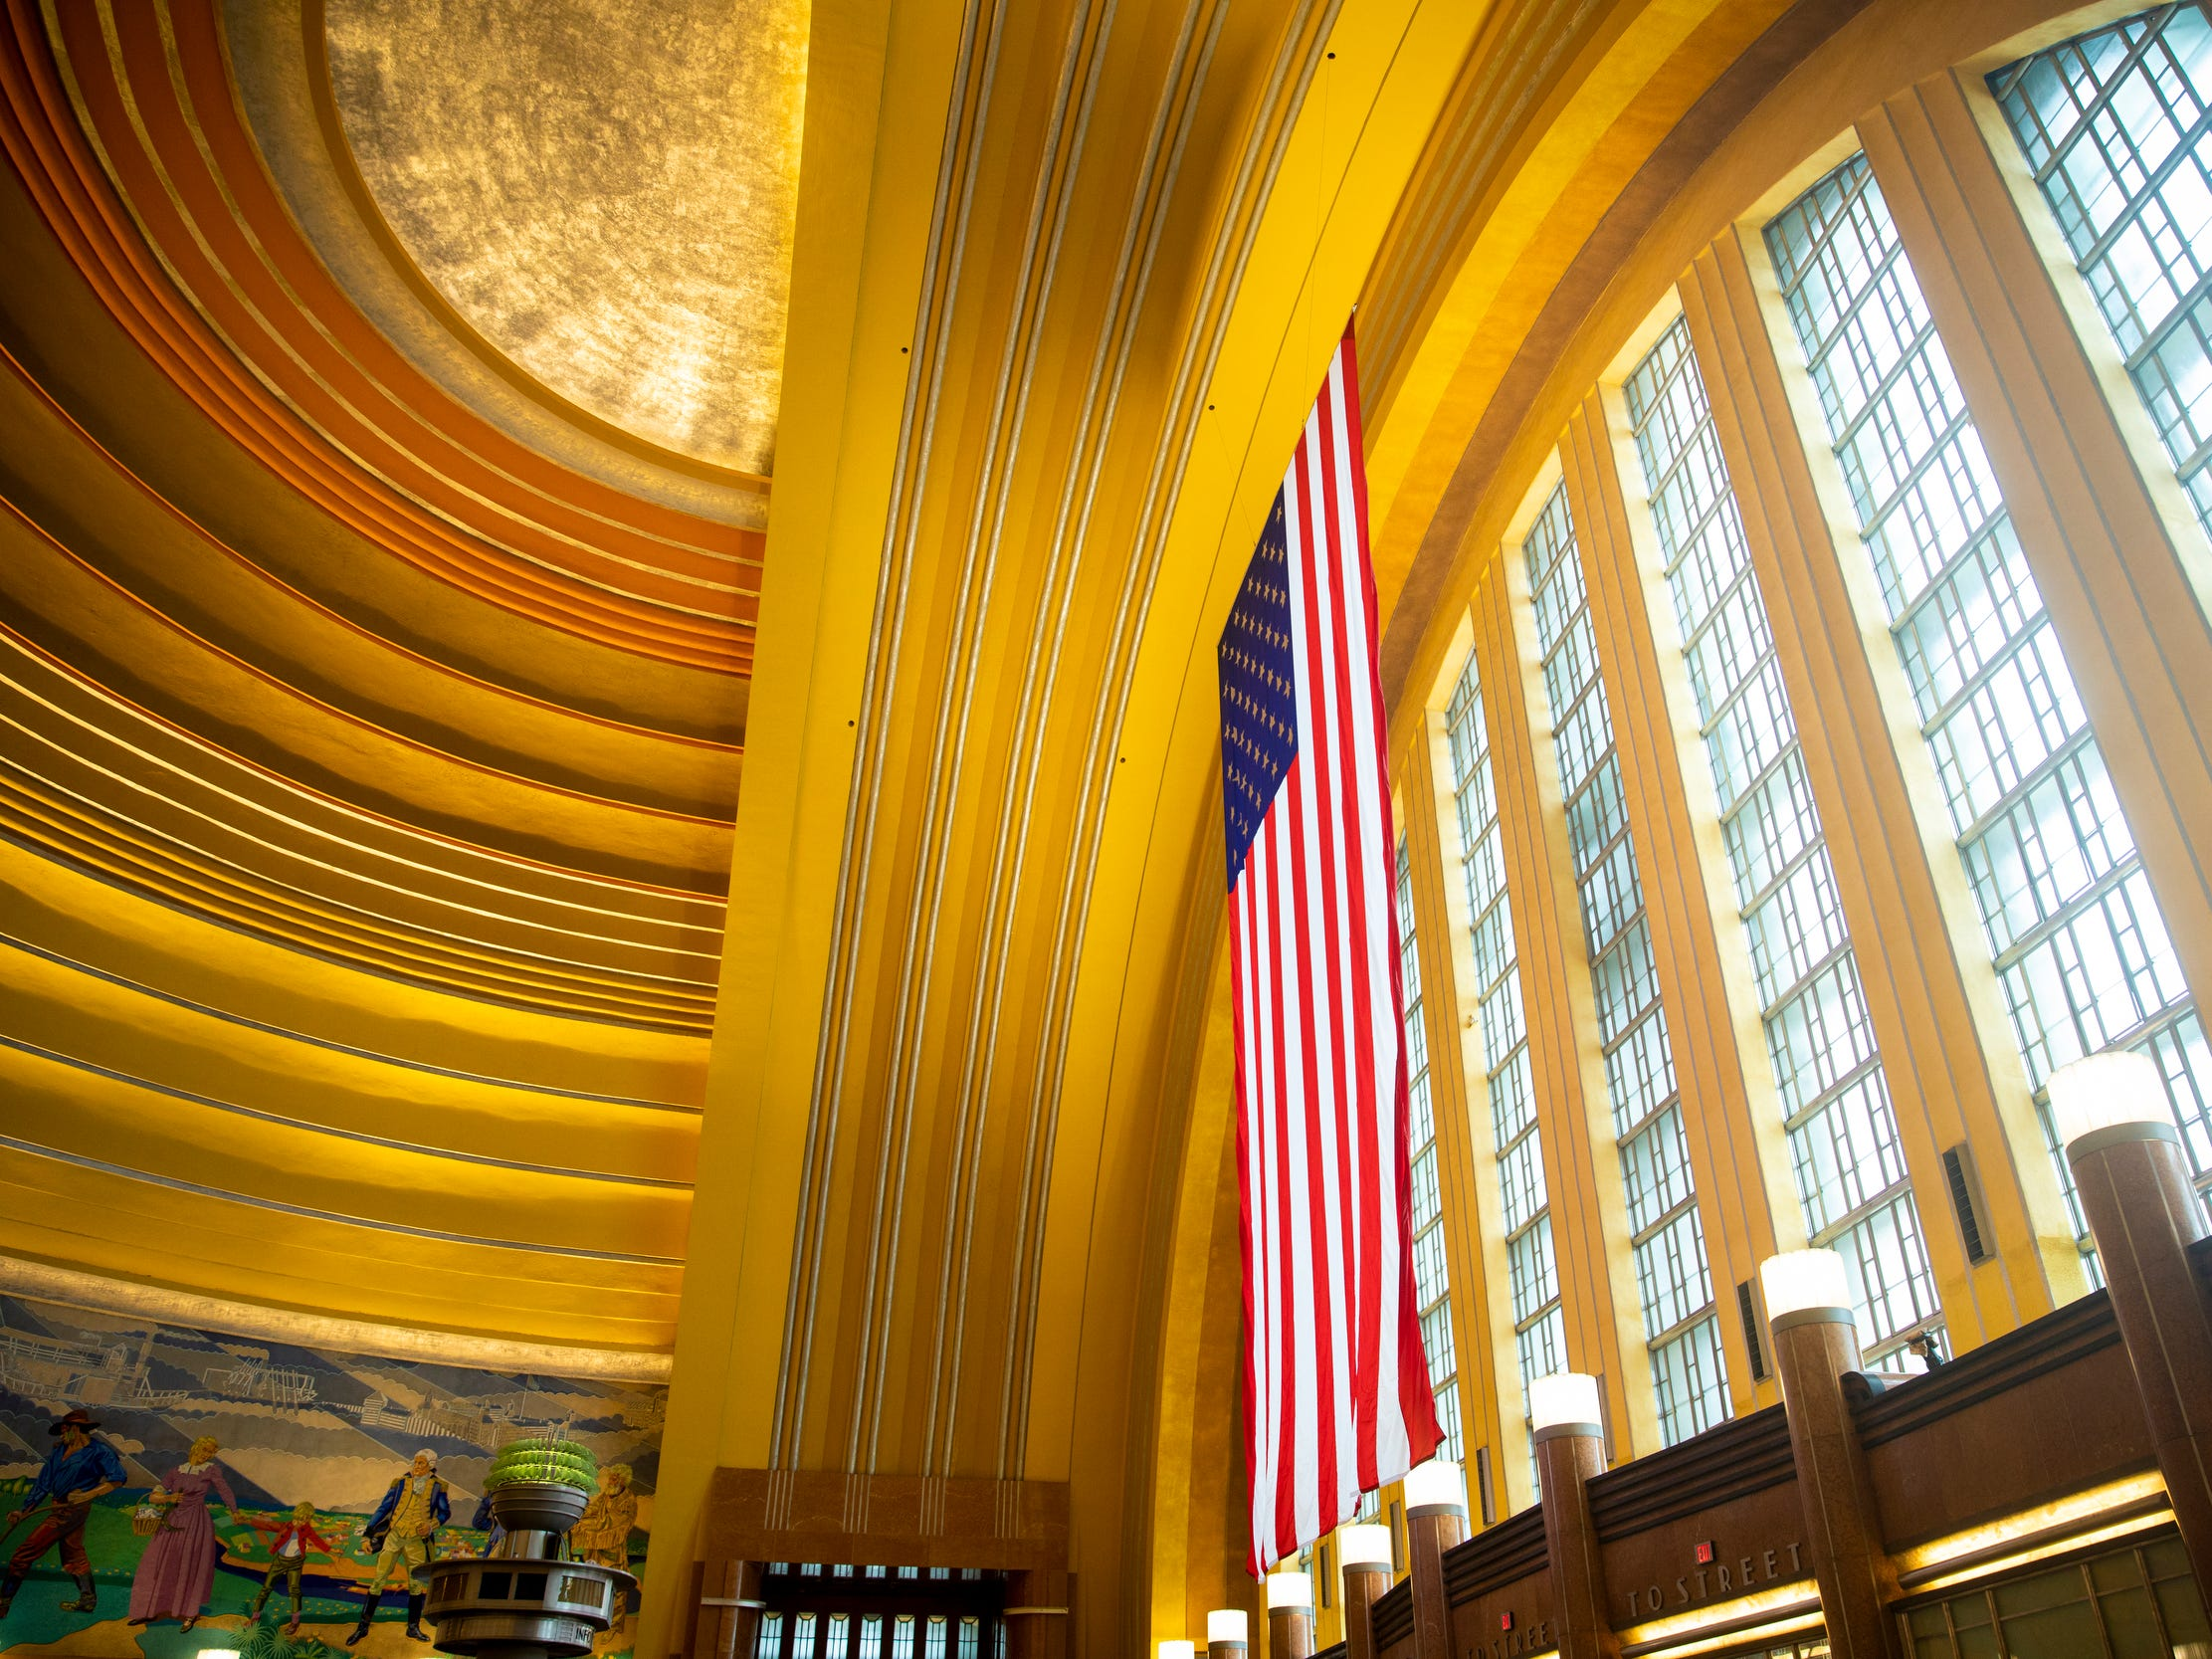 Construction crews removed and restored every pane of glass in the front of the Cincinnati Museum Center at Union Terminal during the $228 million restoration project. Crews also added new storm panels and portal glazing.